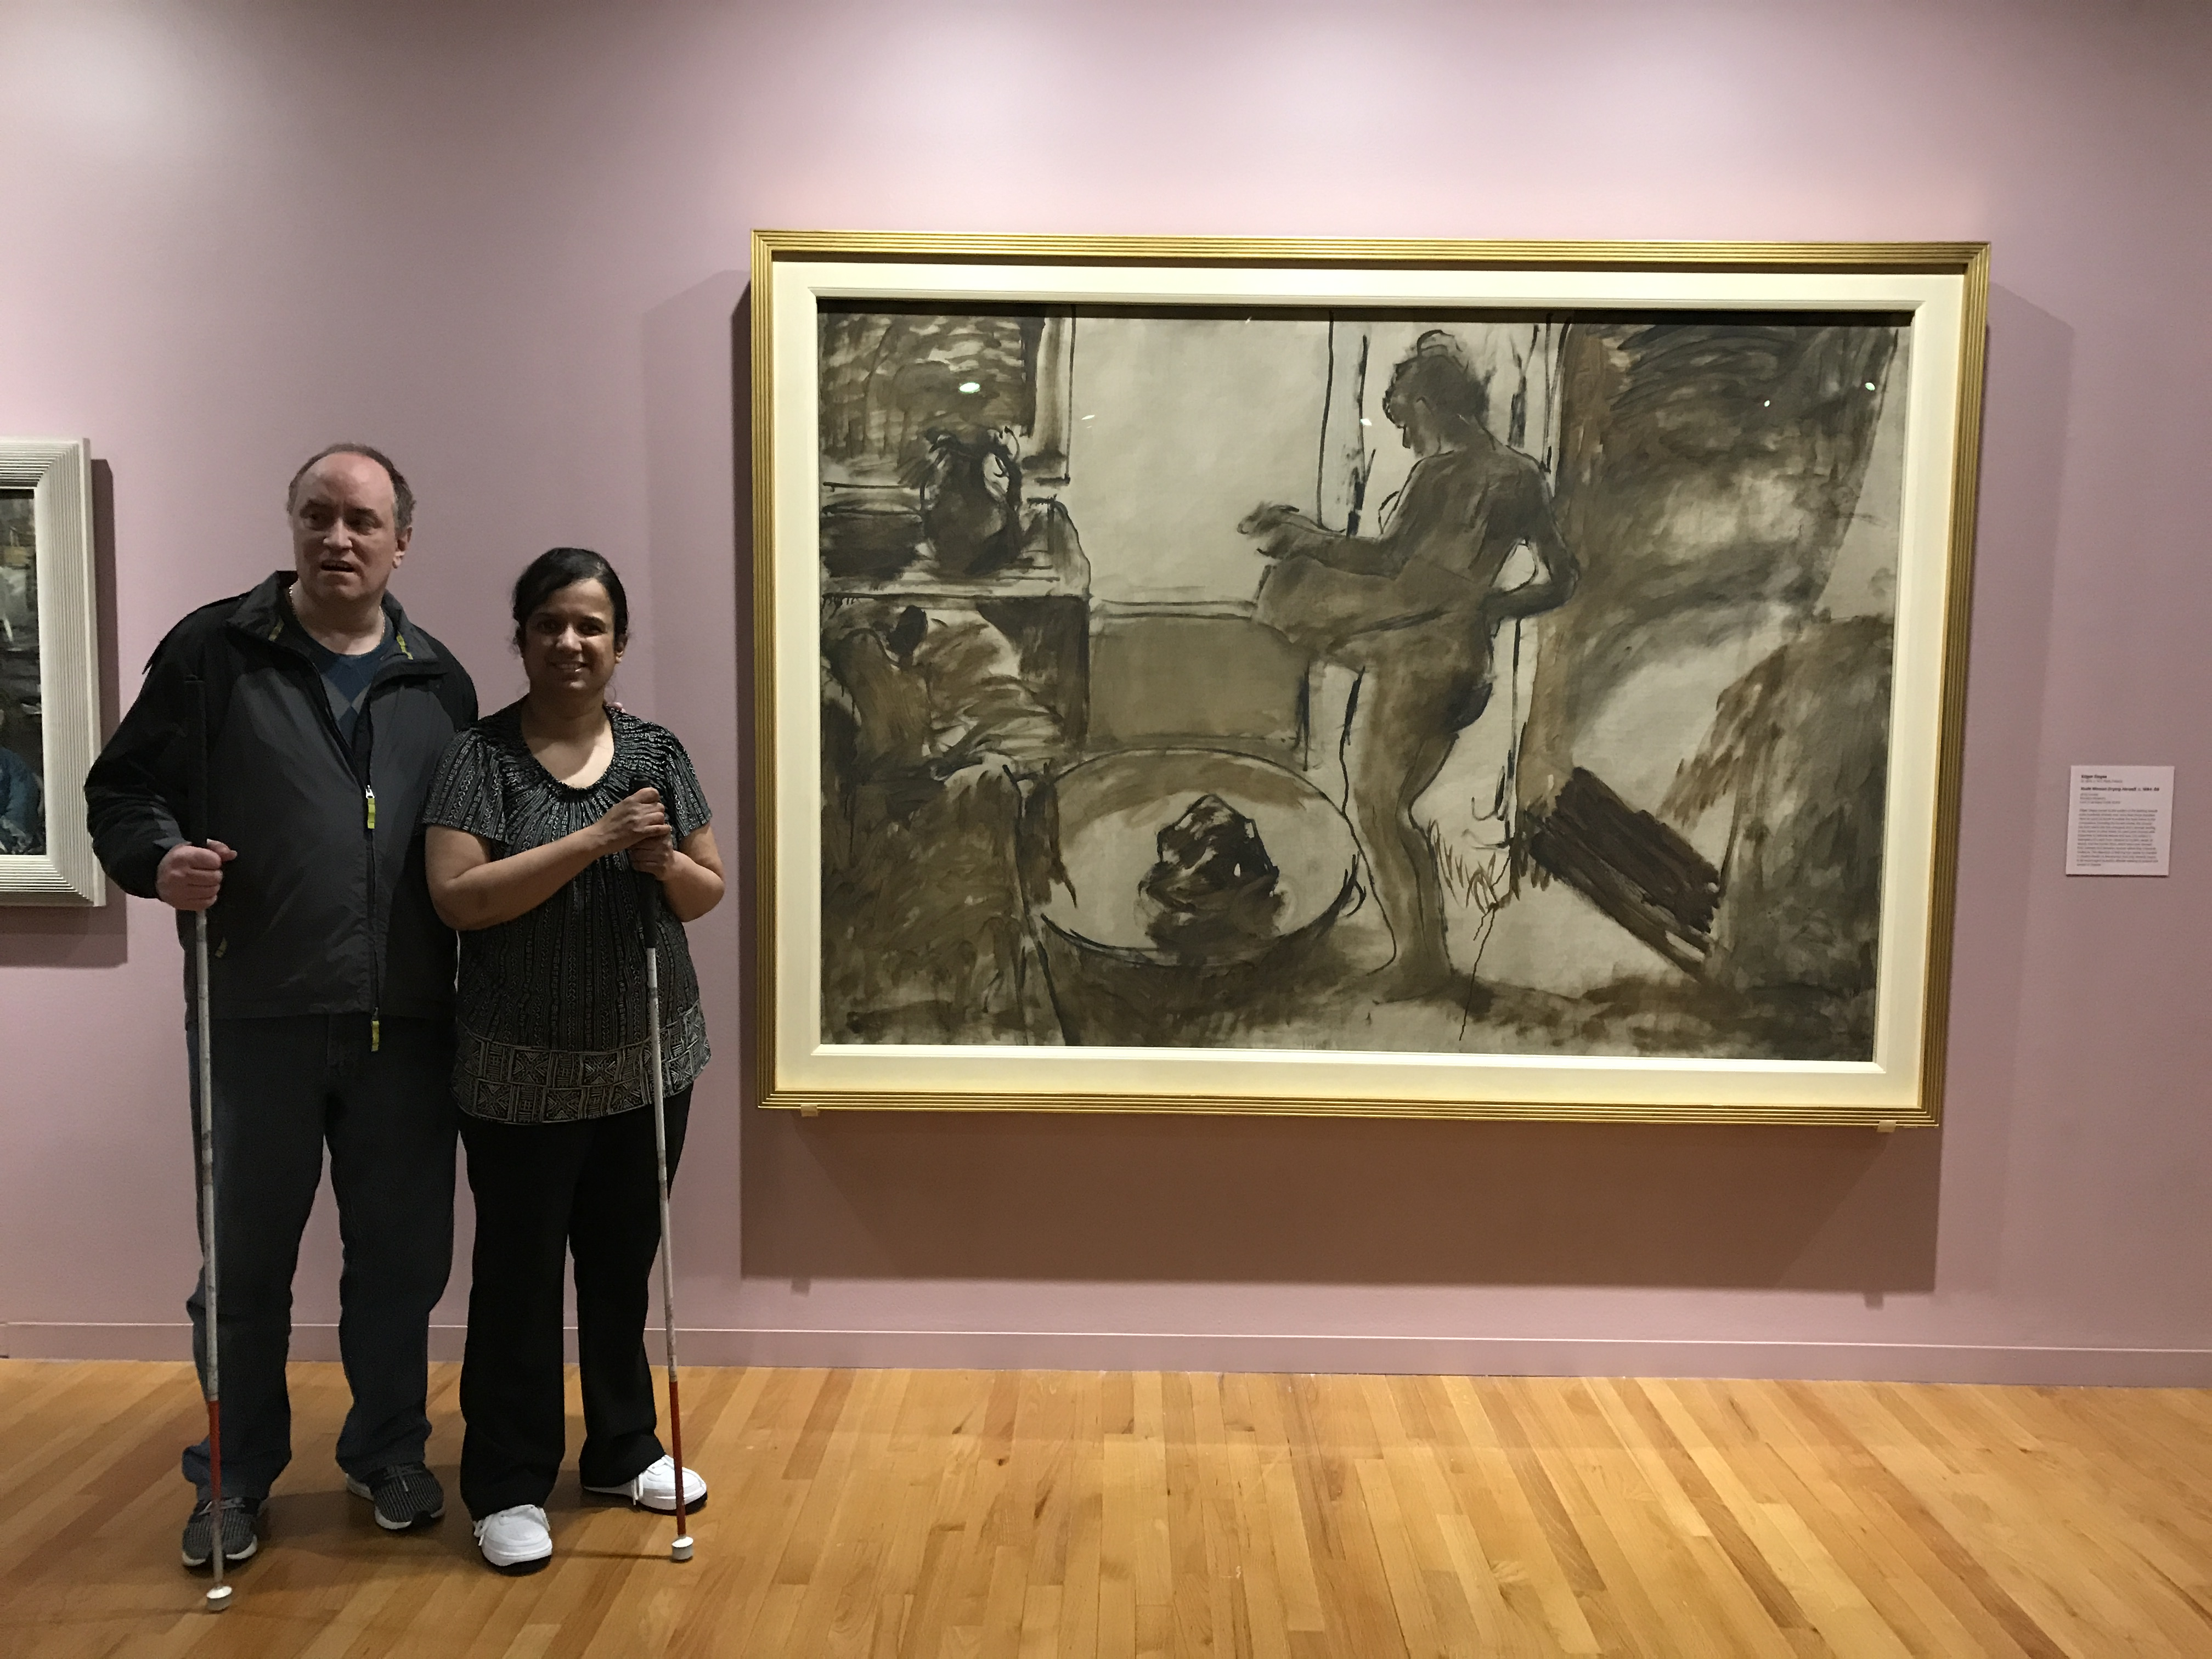 Kristy and Shawn beside one of the paintings by the French masters